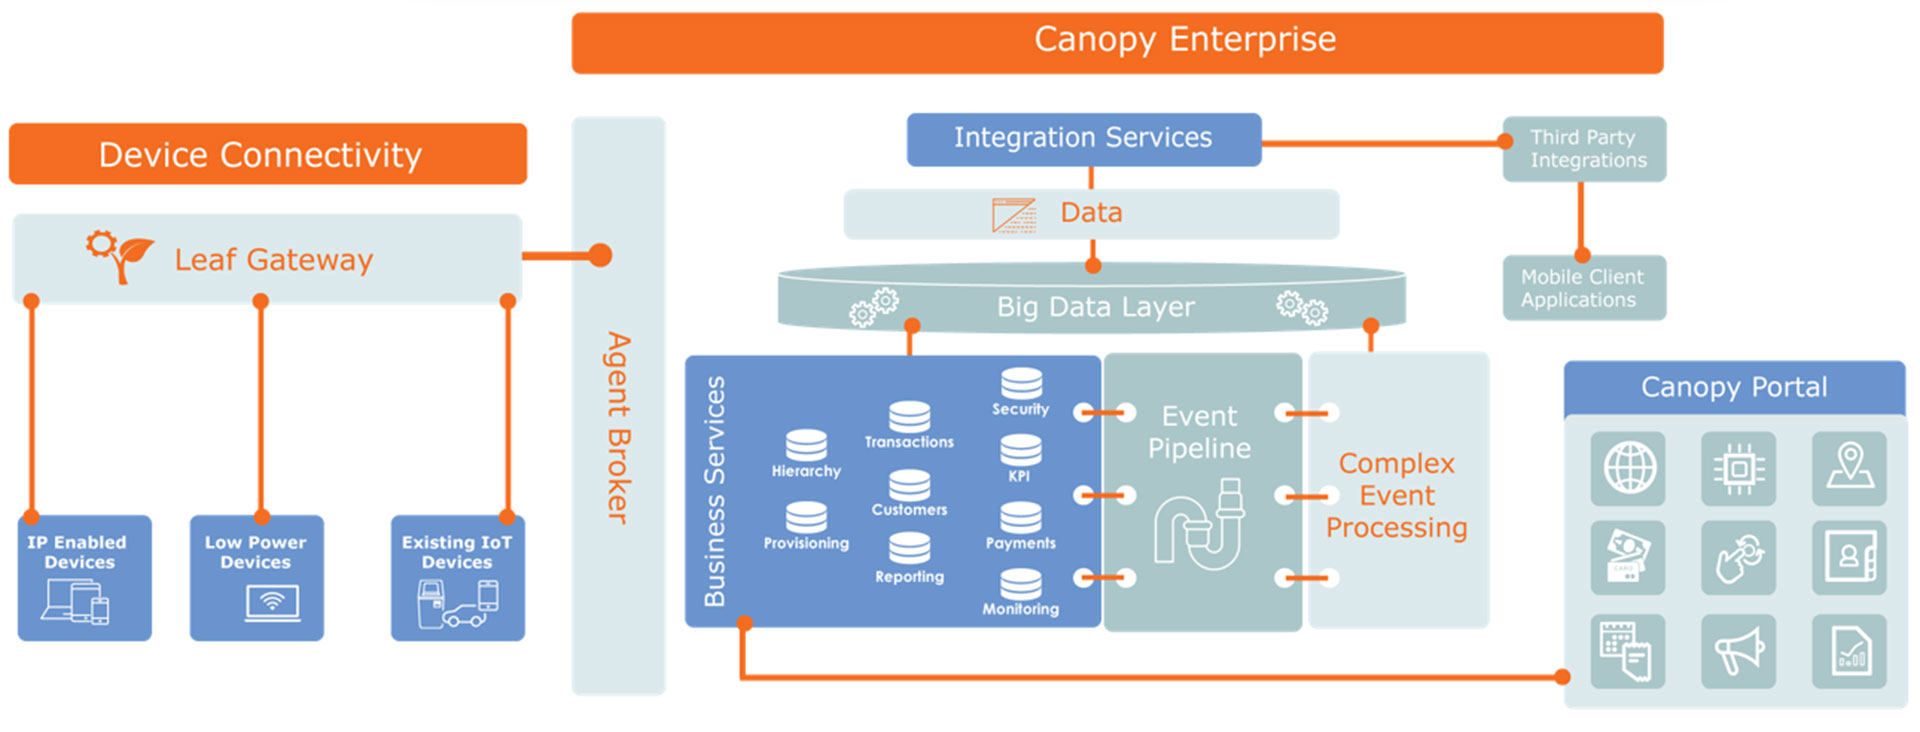 An Overview of the Canopy architecture